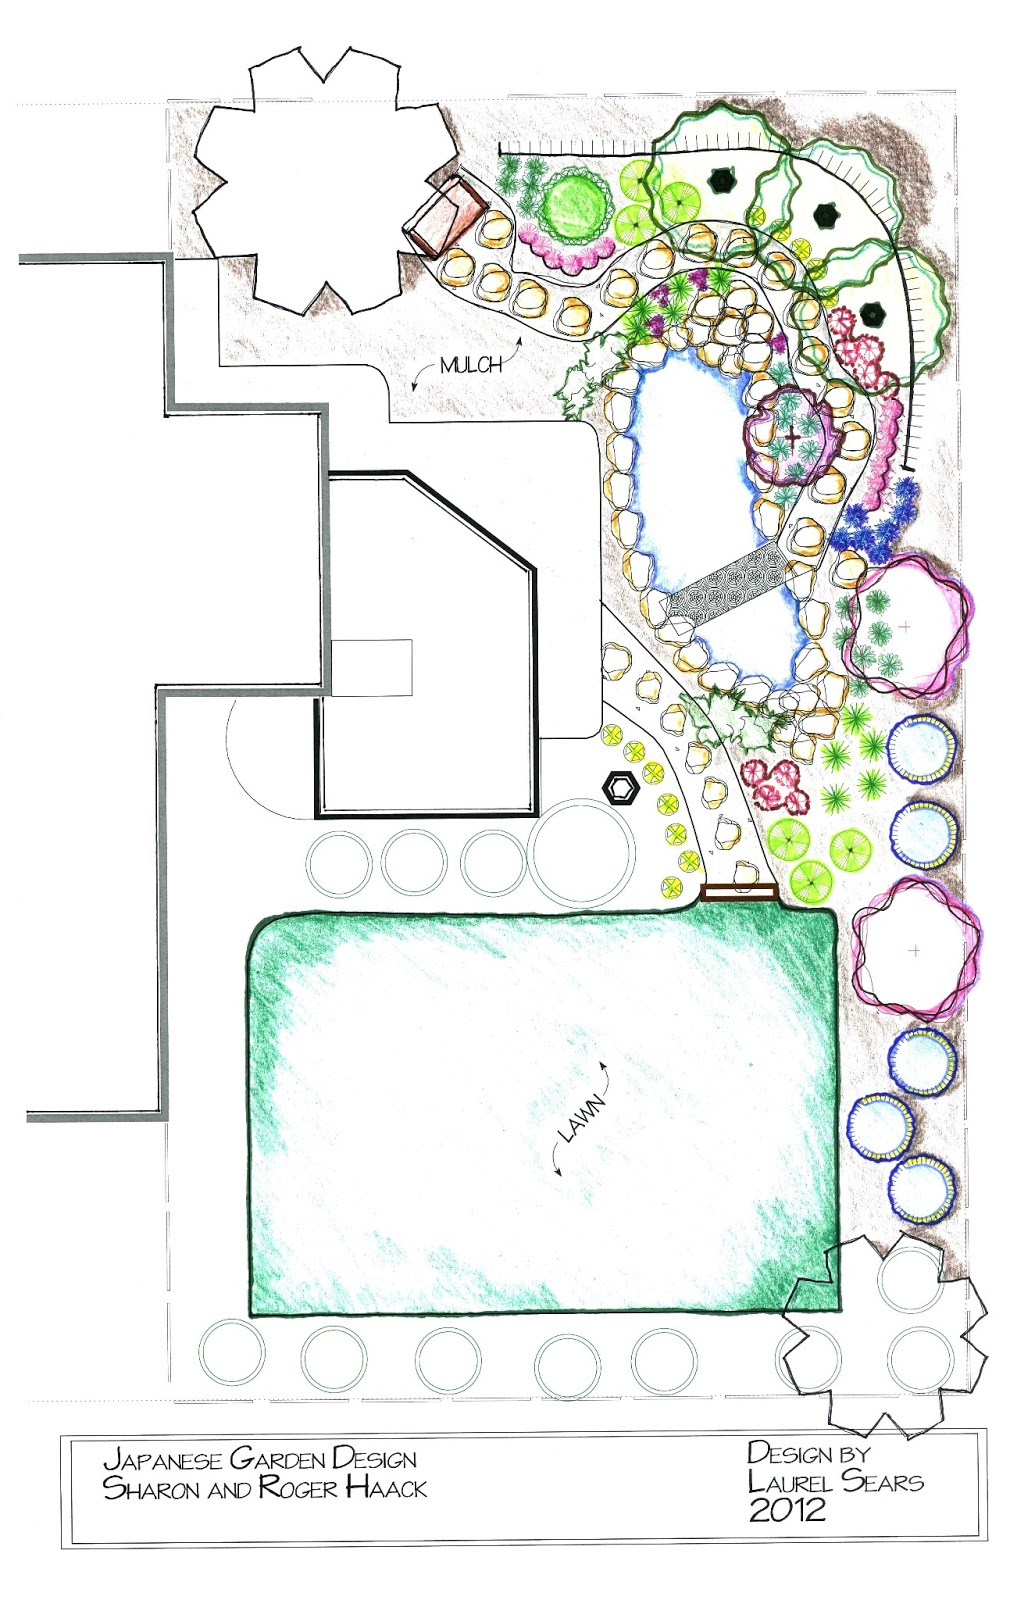 Hal's Hat: Japanese gardens: design to reality on japanese zen gardens, japanese painting drawing, christmas design drawing, japanese architecture drawing, french garden drawing, grapevine design drawing, zen design drawing, water design drawing, garden layout drawing, japanese art drawing, fountain design drawing, japanese bonsai drawing, japanese home drawing, japanese sculpture drawing, nature design drawing, japanese woman drawing, vineyard design drawing, love design drawing, landscape tree plan drawing, fruit design drawing,